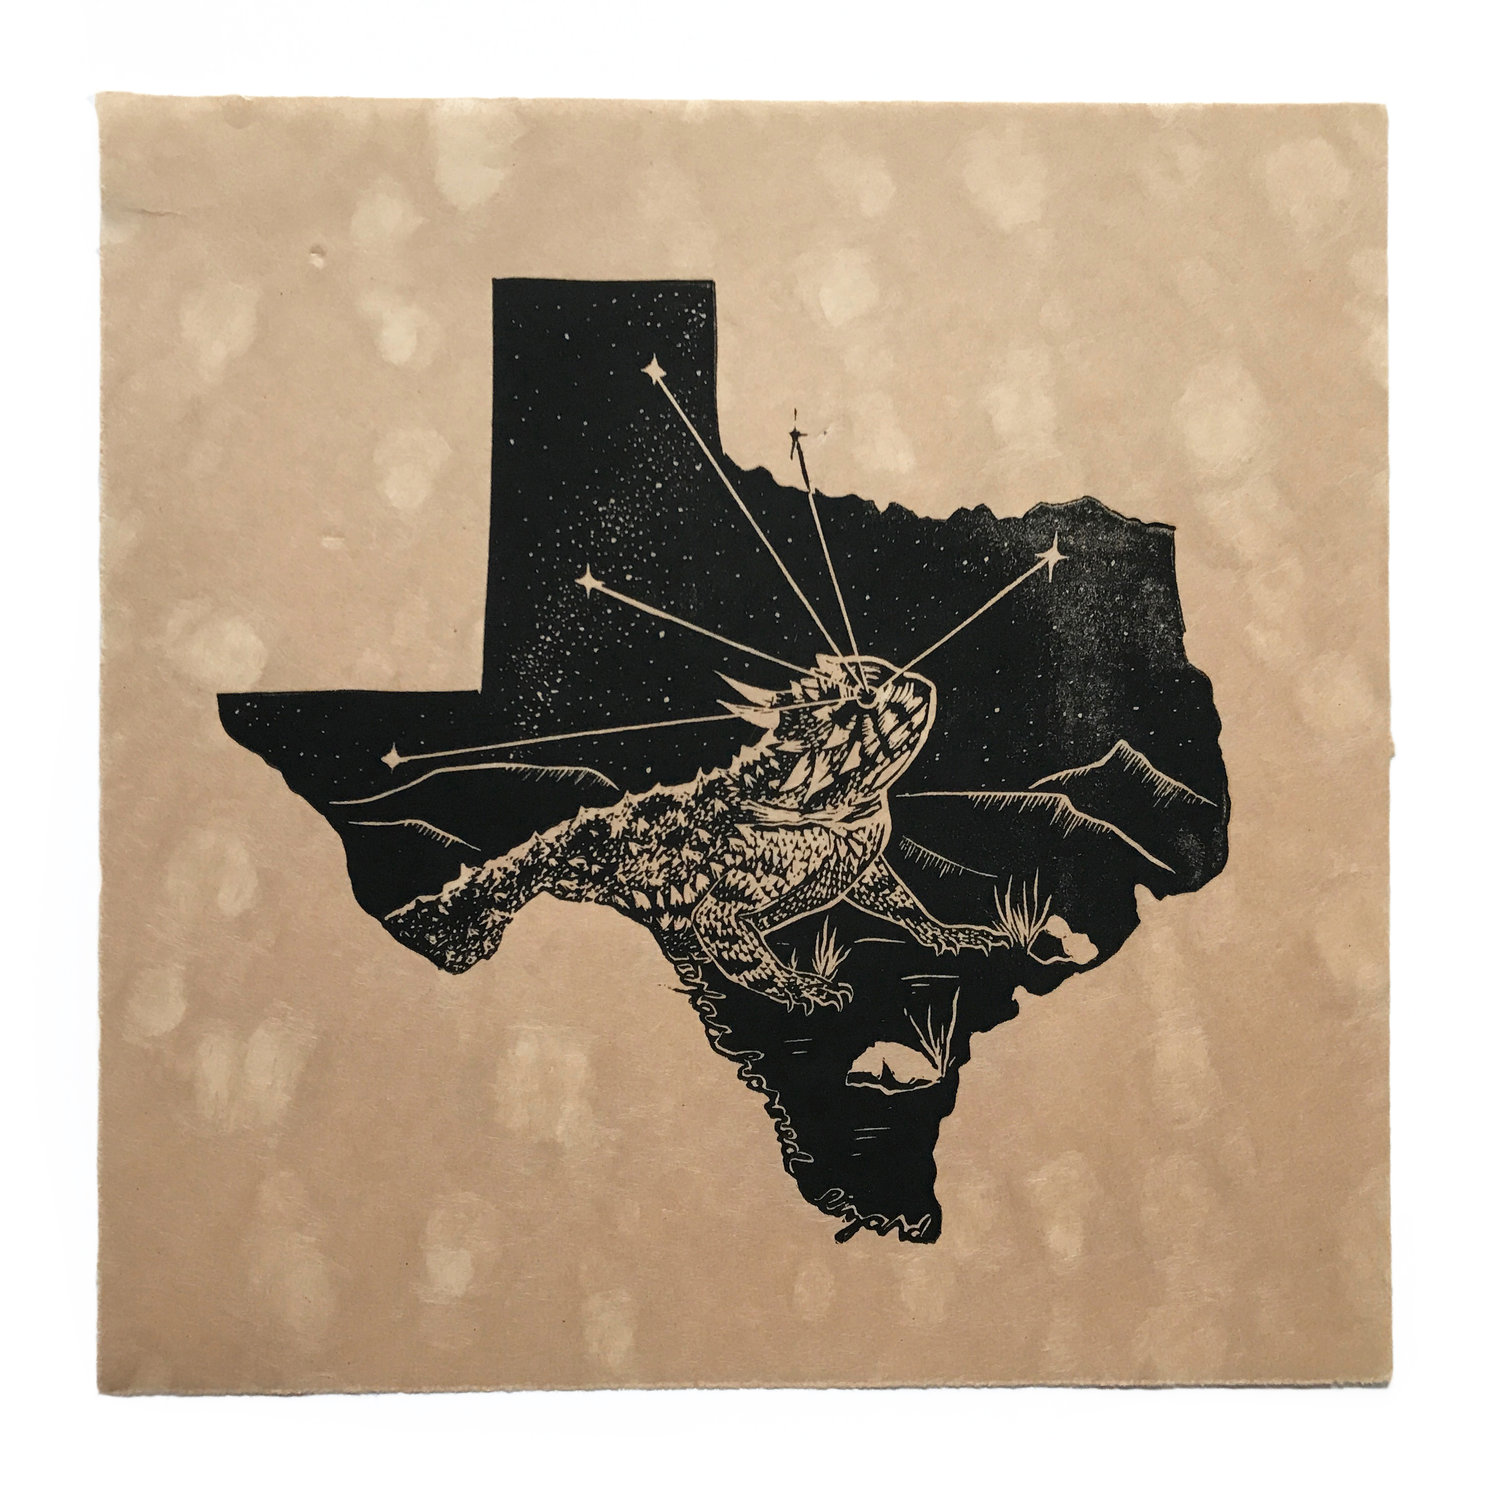 Then Come The Night - Texas Horned Lizard - $200